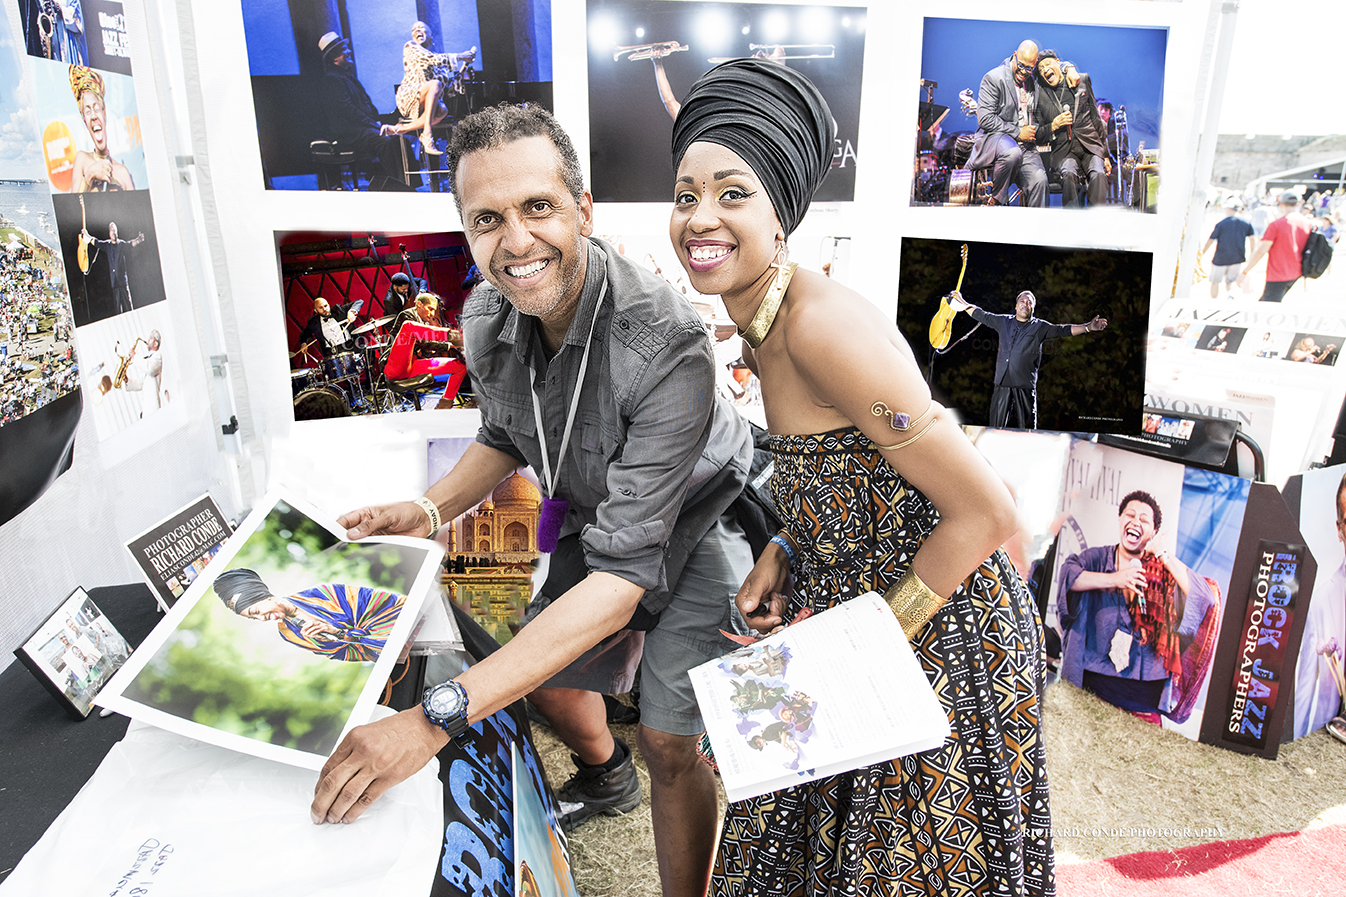 Photographer Richard Conde and Jazzmeia Horn at the 2018 Newport Jazz Festival